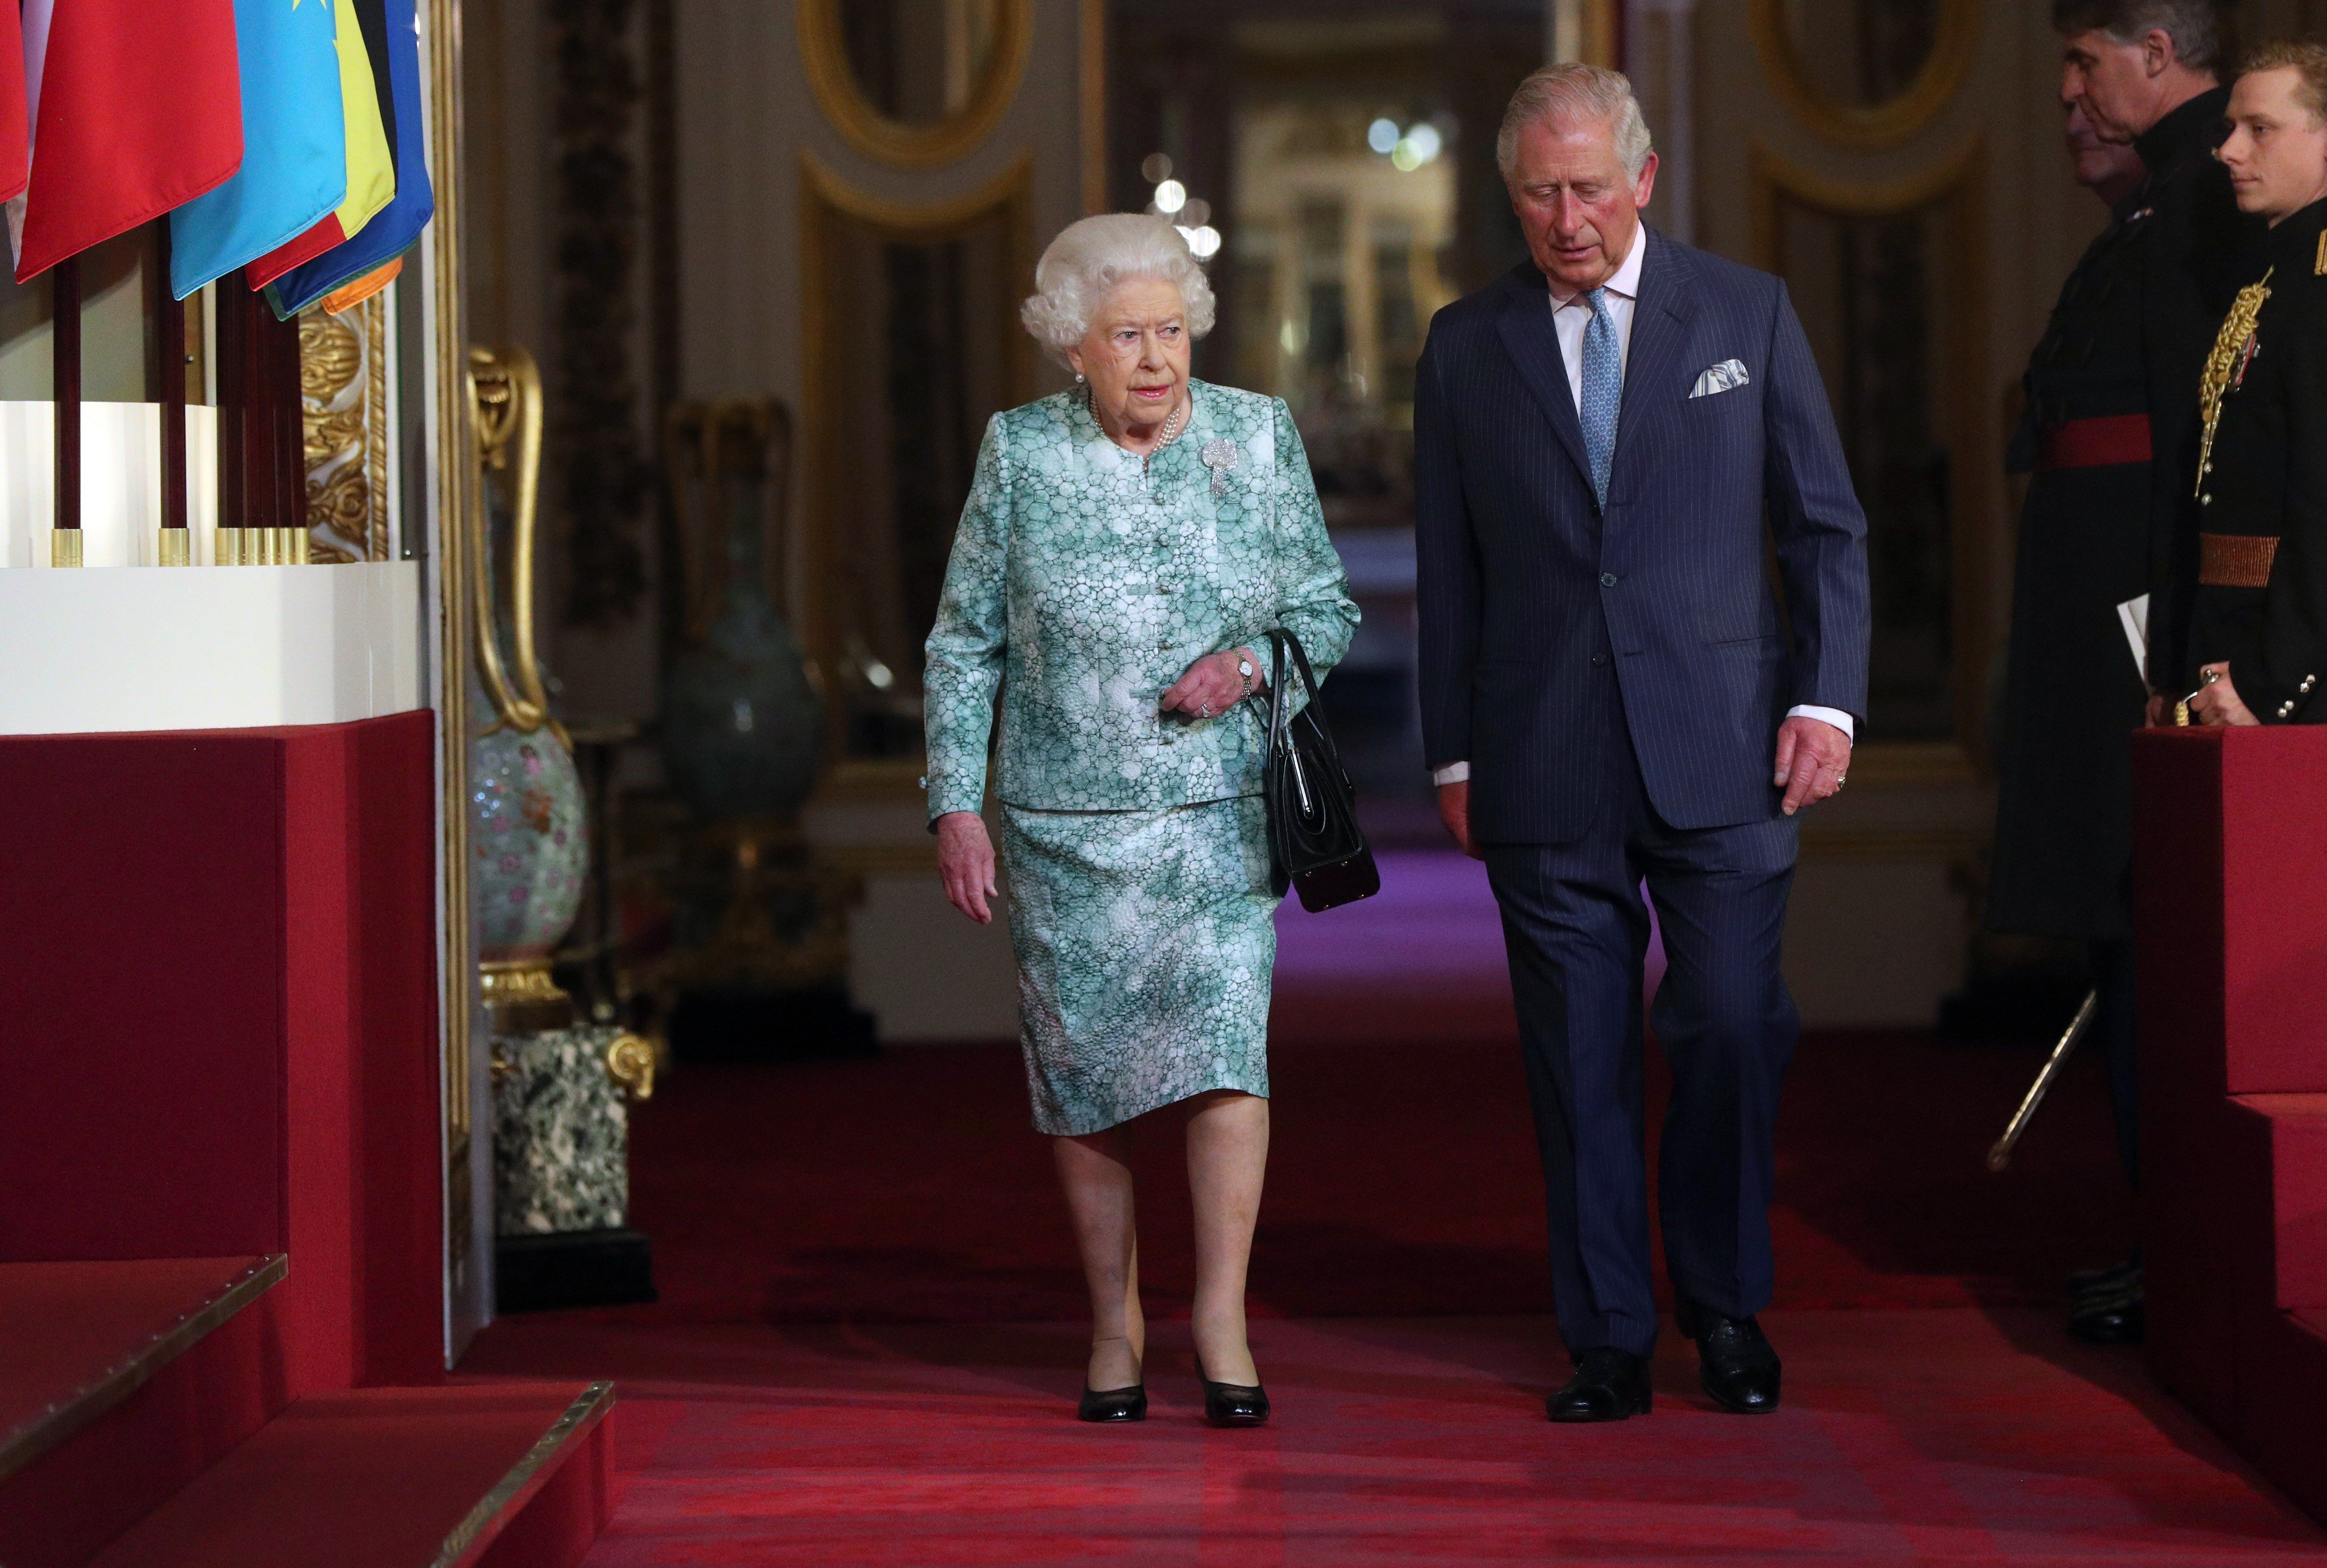 Prince Charles to Be Next Commonwealth Head After Queen Elizabeth II